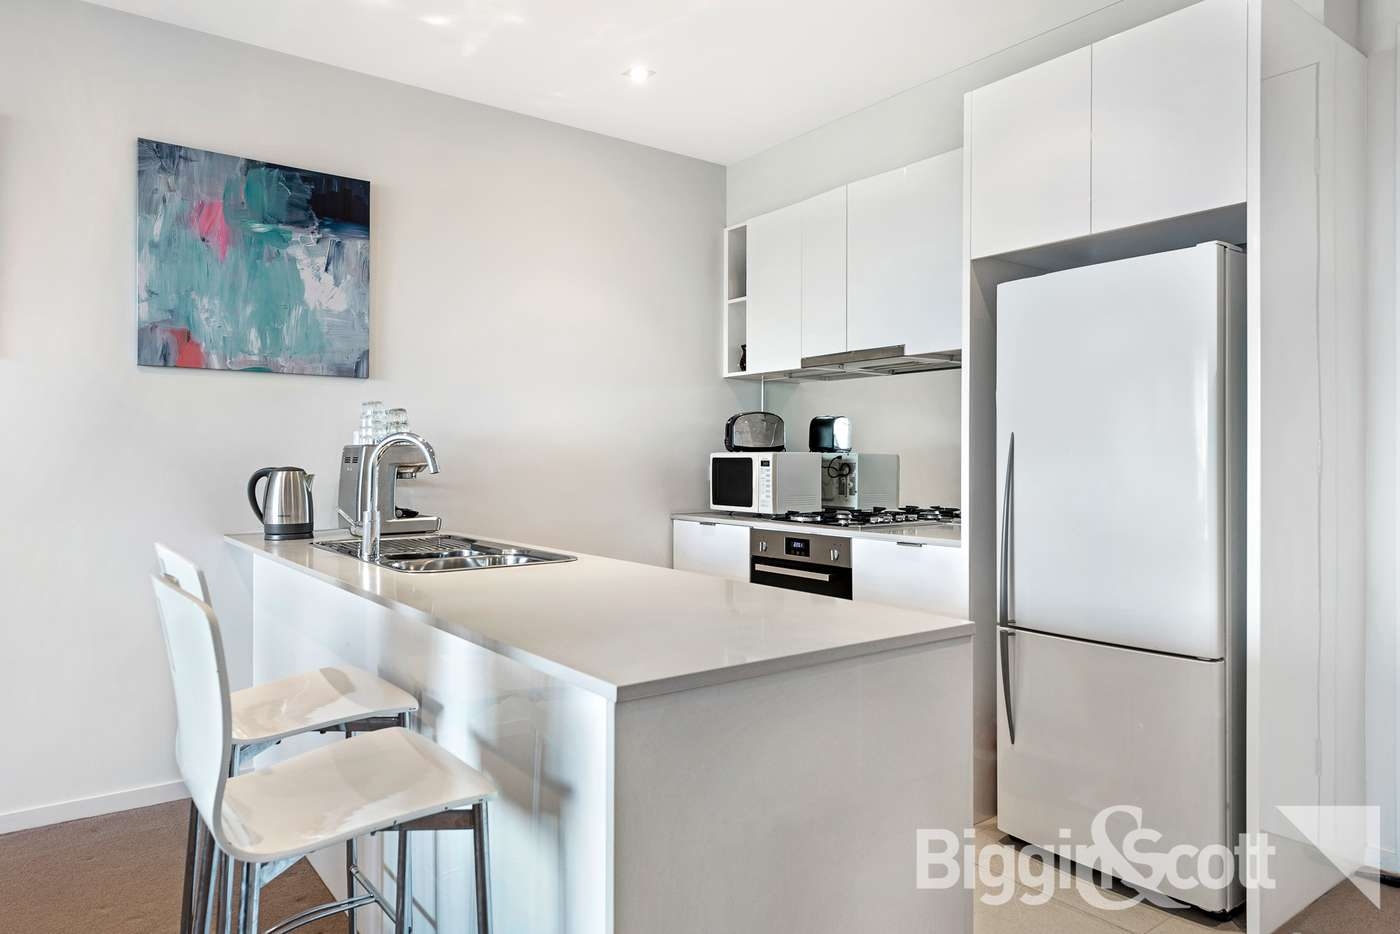 Fifth view of Homely apartment listing, 203/20 Pier Lane, Maribyrnong VIC 3032